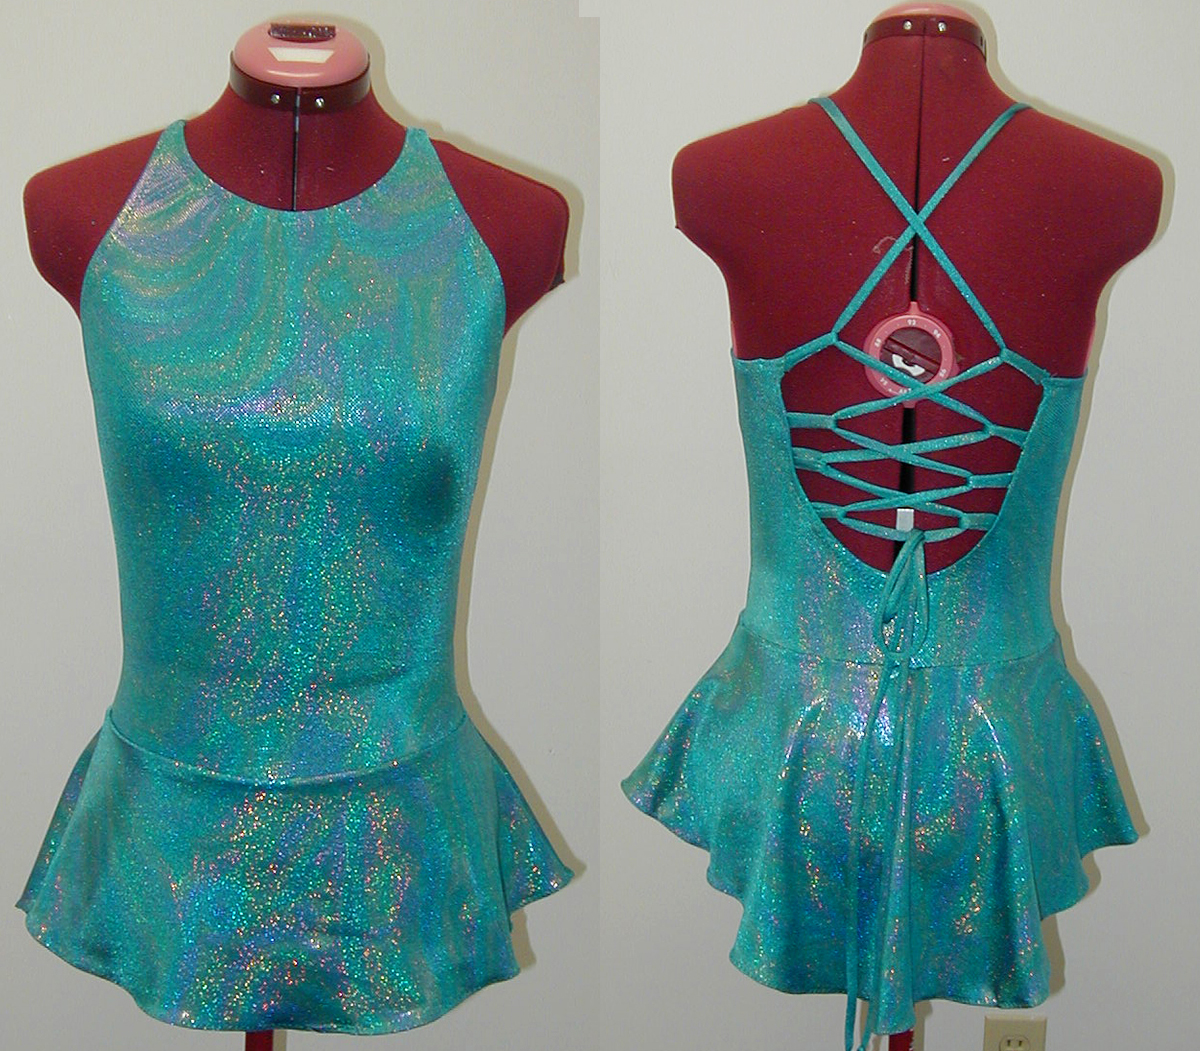 The front and back of a sleeveless blue skating dress. The back is wide open, with lacing criss-crossing it.